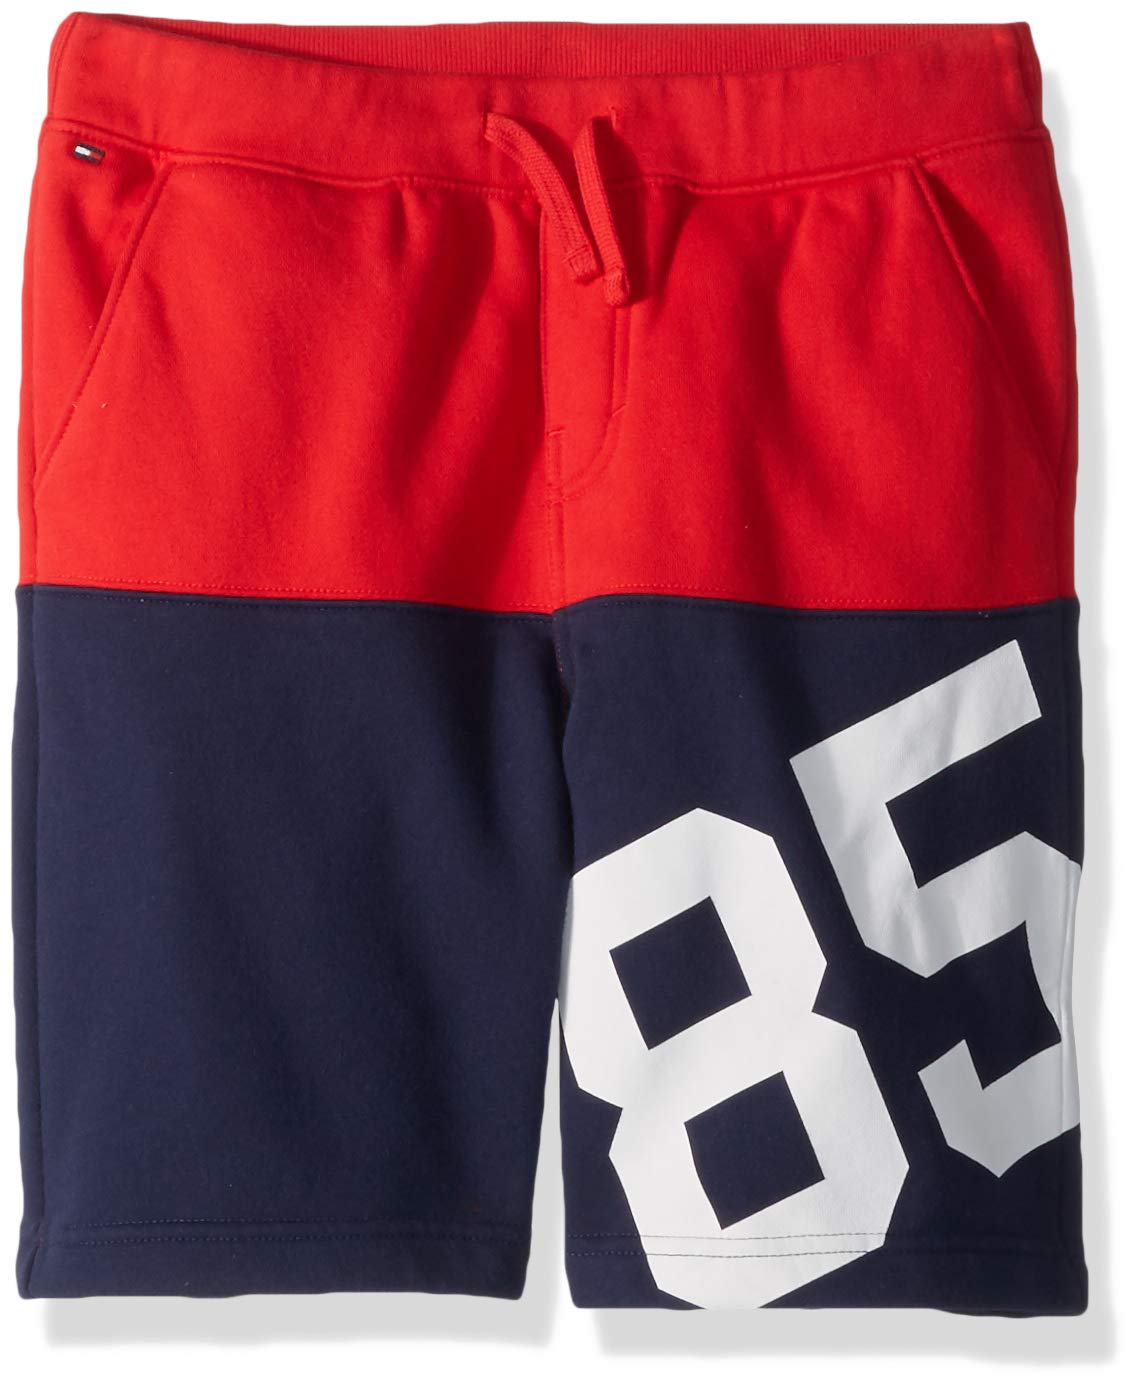 Tommy Hilfiger Boys' Adaptive Shorts with Elastic and Drawstring Waist, racing red LG